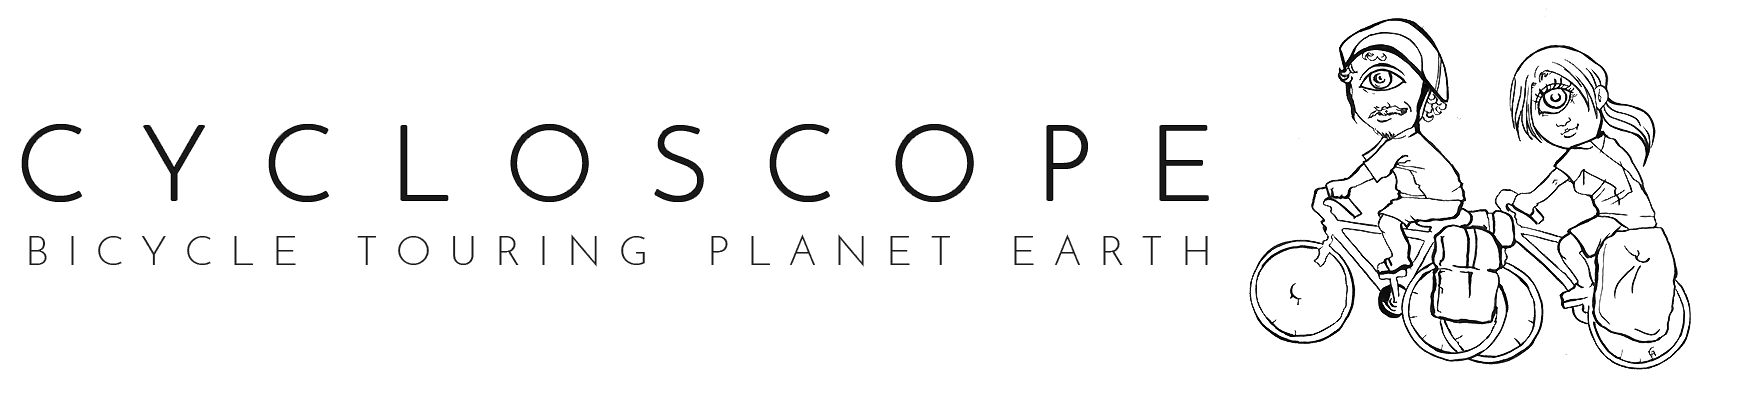 Cycloscope Bicycle Touring Planet Earth Logo